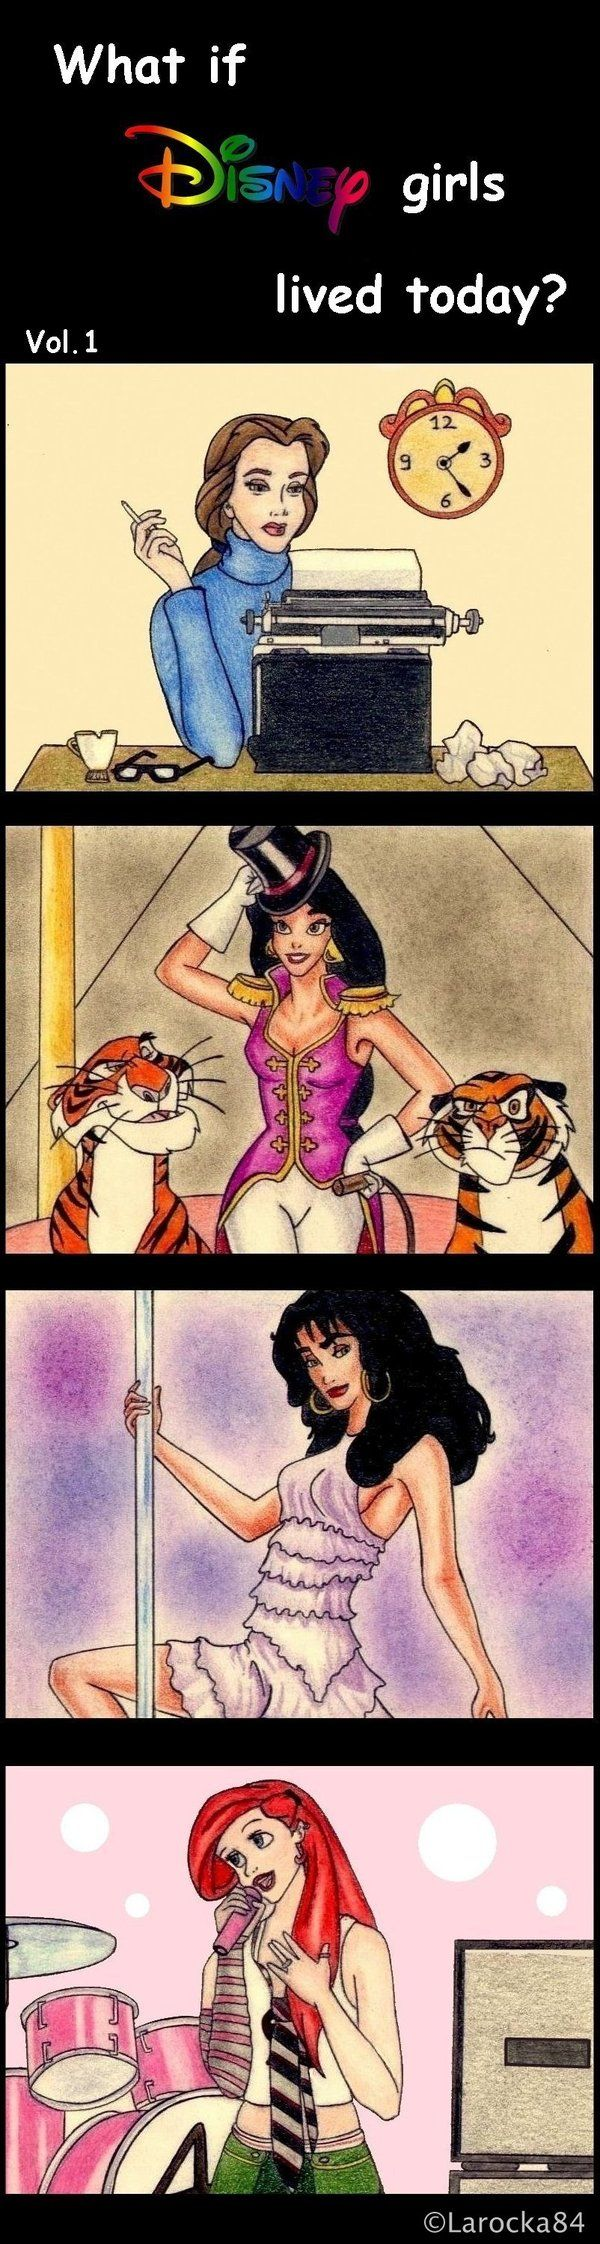 If Disney girls lived today